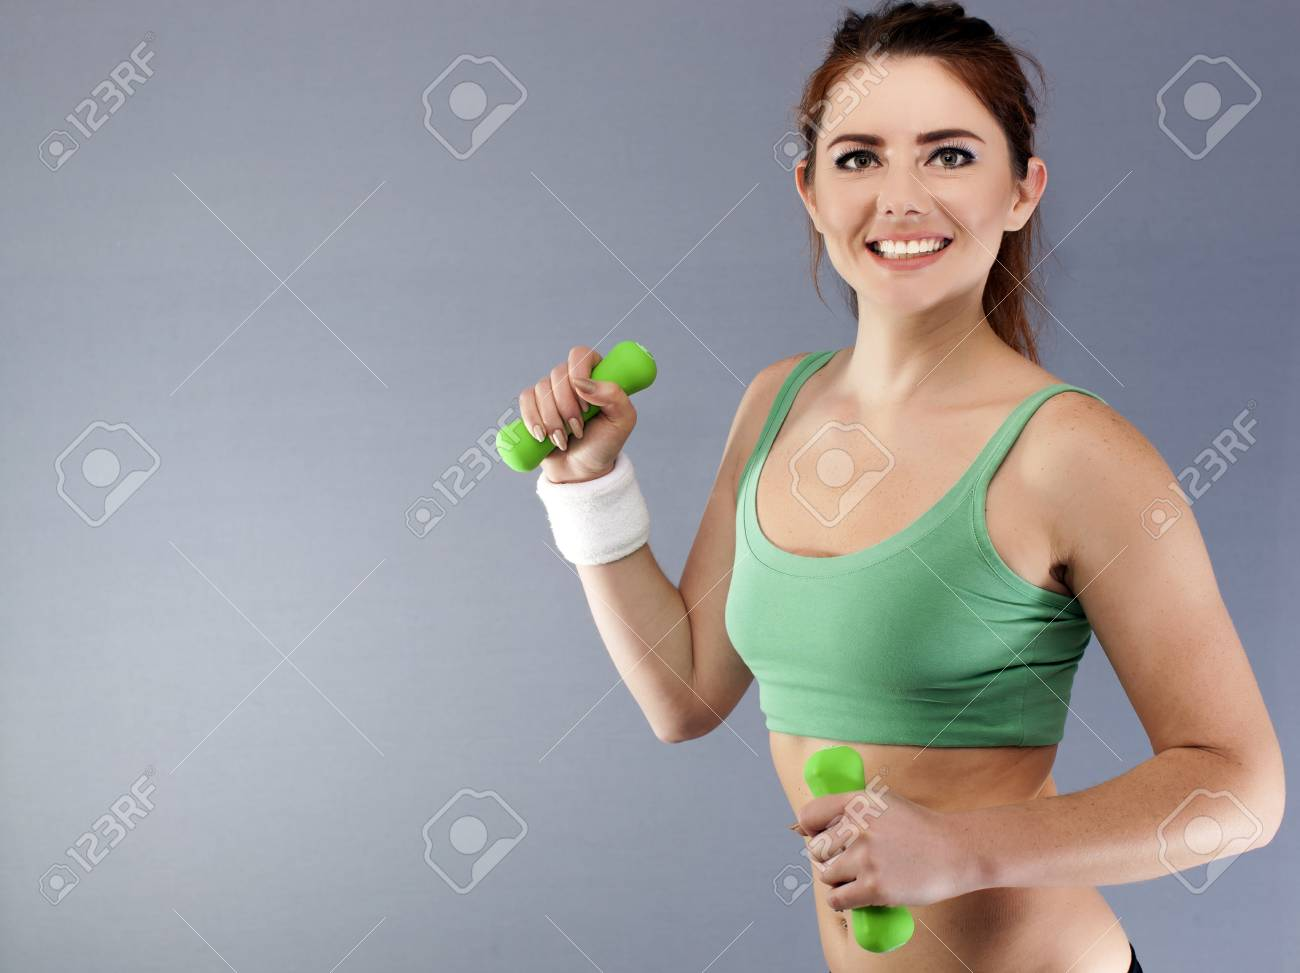 Green dumbbells in hands of fitness young woman. Sport team - 78009957